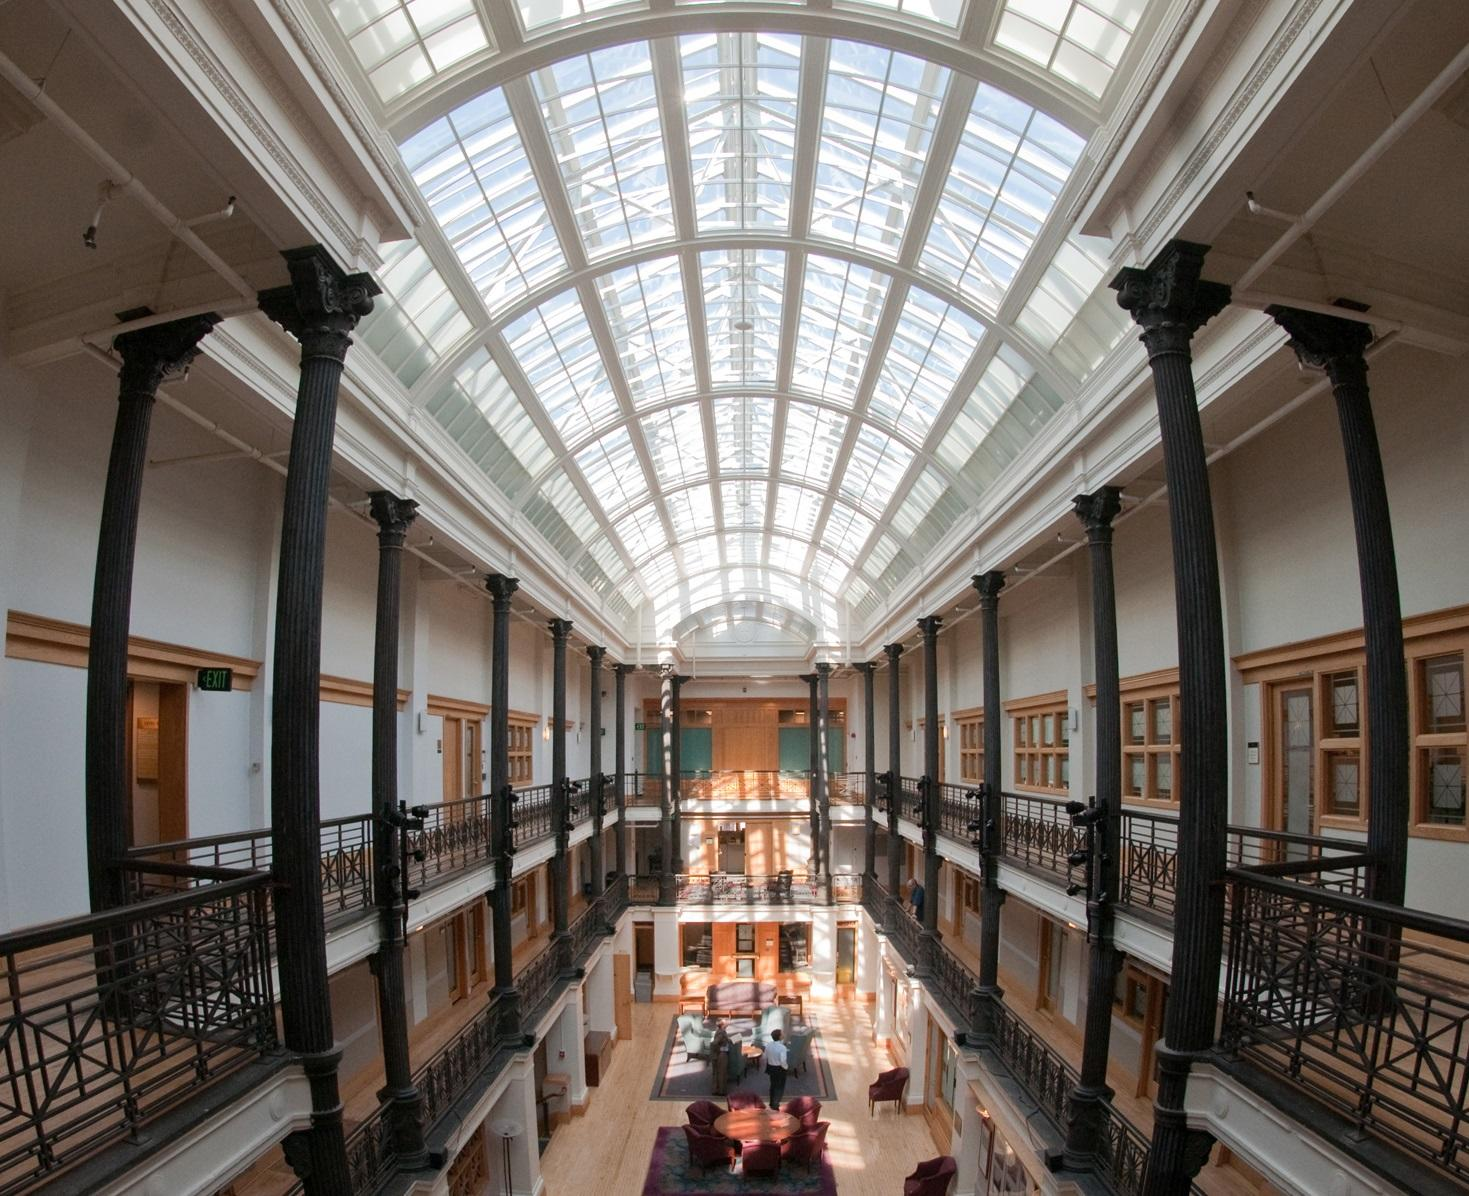 Gordon Hall Atrium